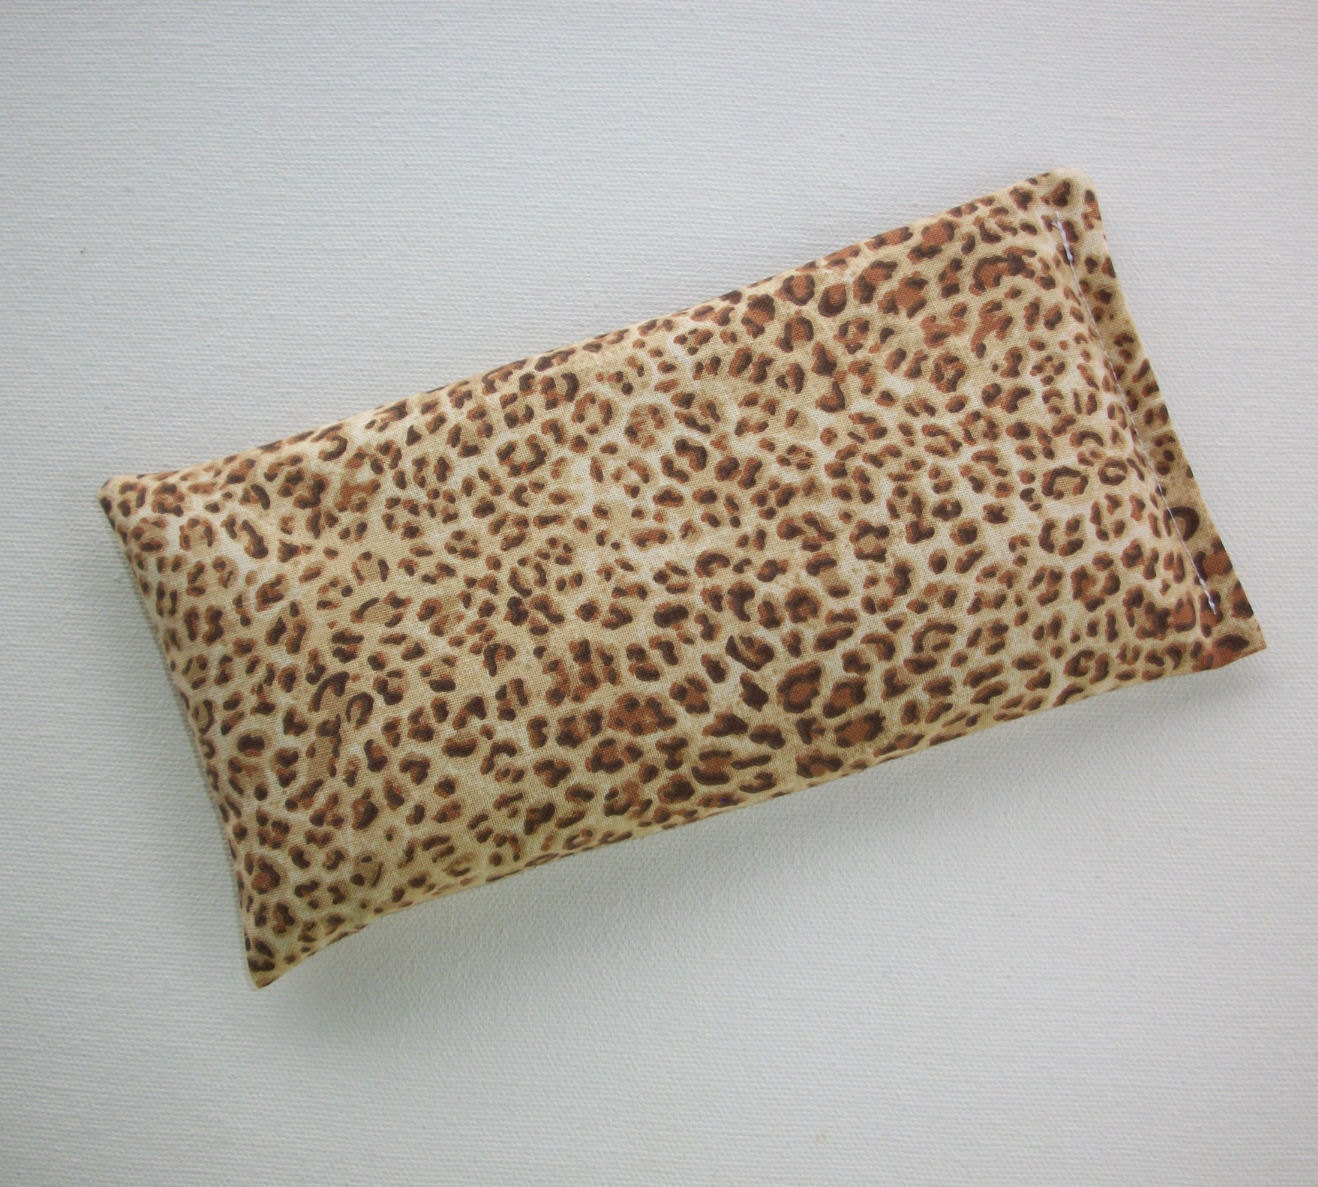 Aromatherapy Animal Pillow : Aromatherapy Eye Pillow lavender / flax seeds Cheetah